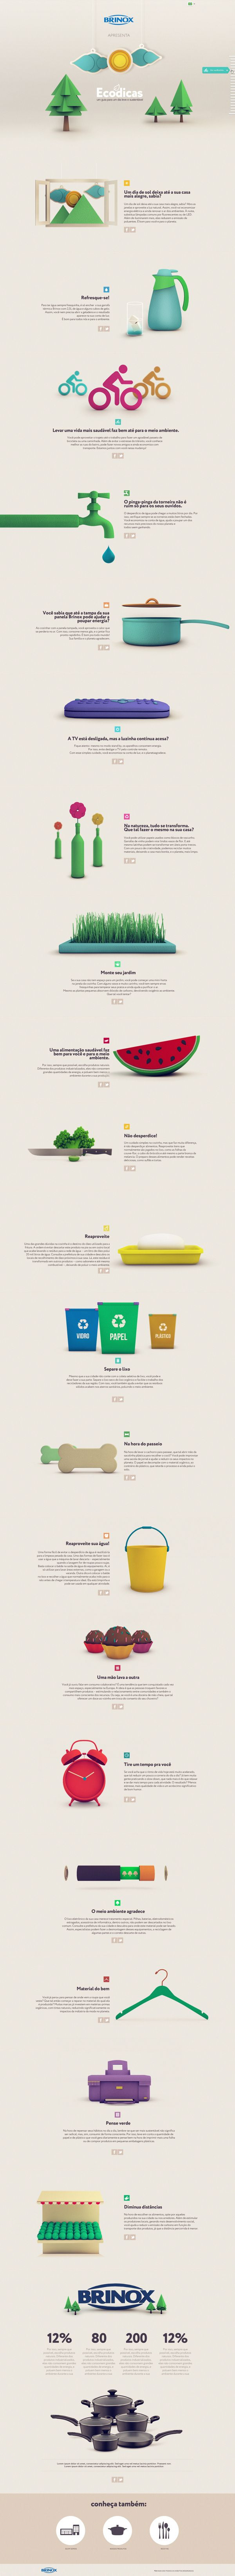 Eco Dicas - Brinox by Isabela Rodrigues, via Behance